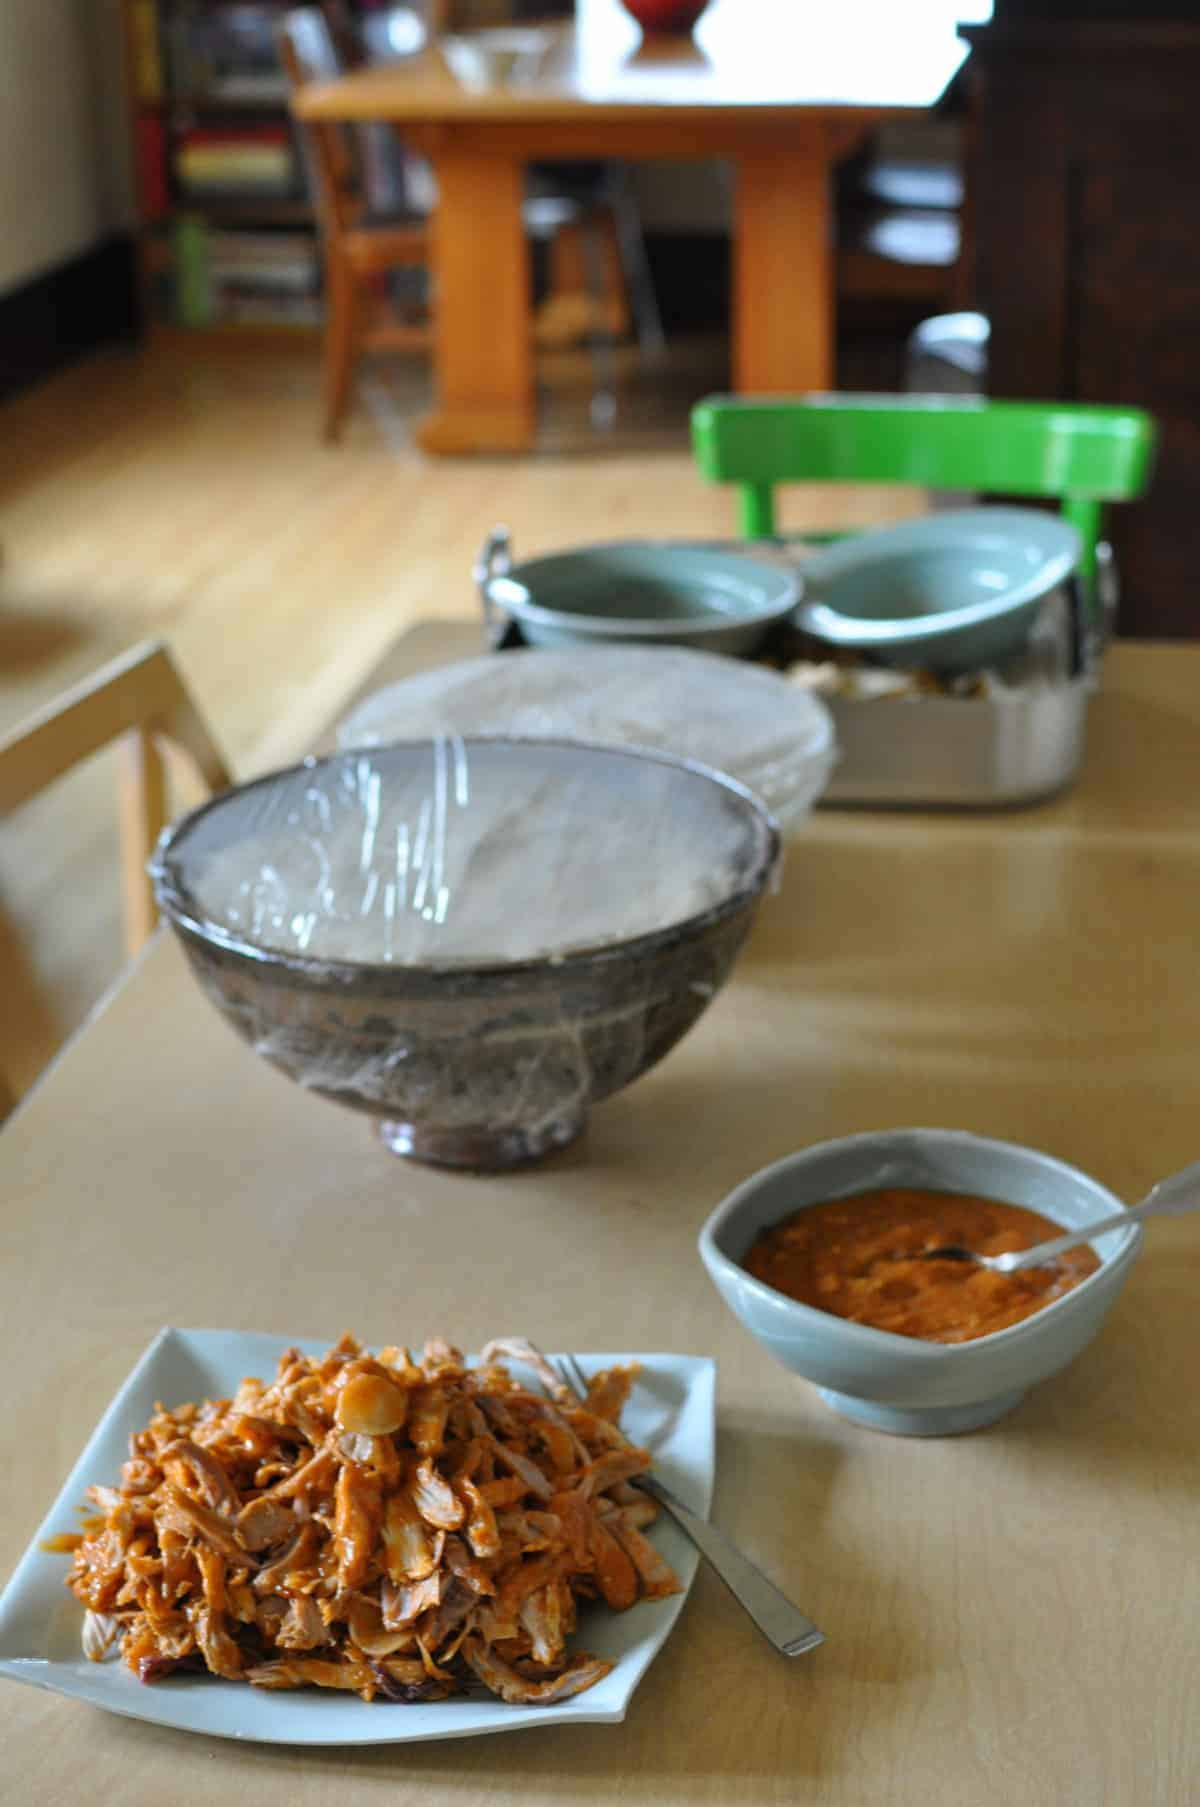 A table set with all the ingredients for making pork tamales. A plate of shredded pork, mole sauce, and masa.